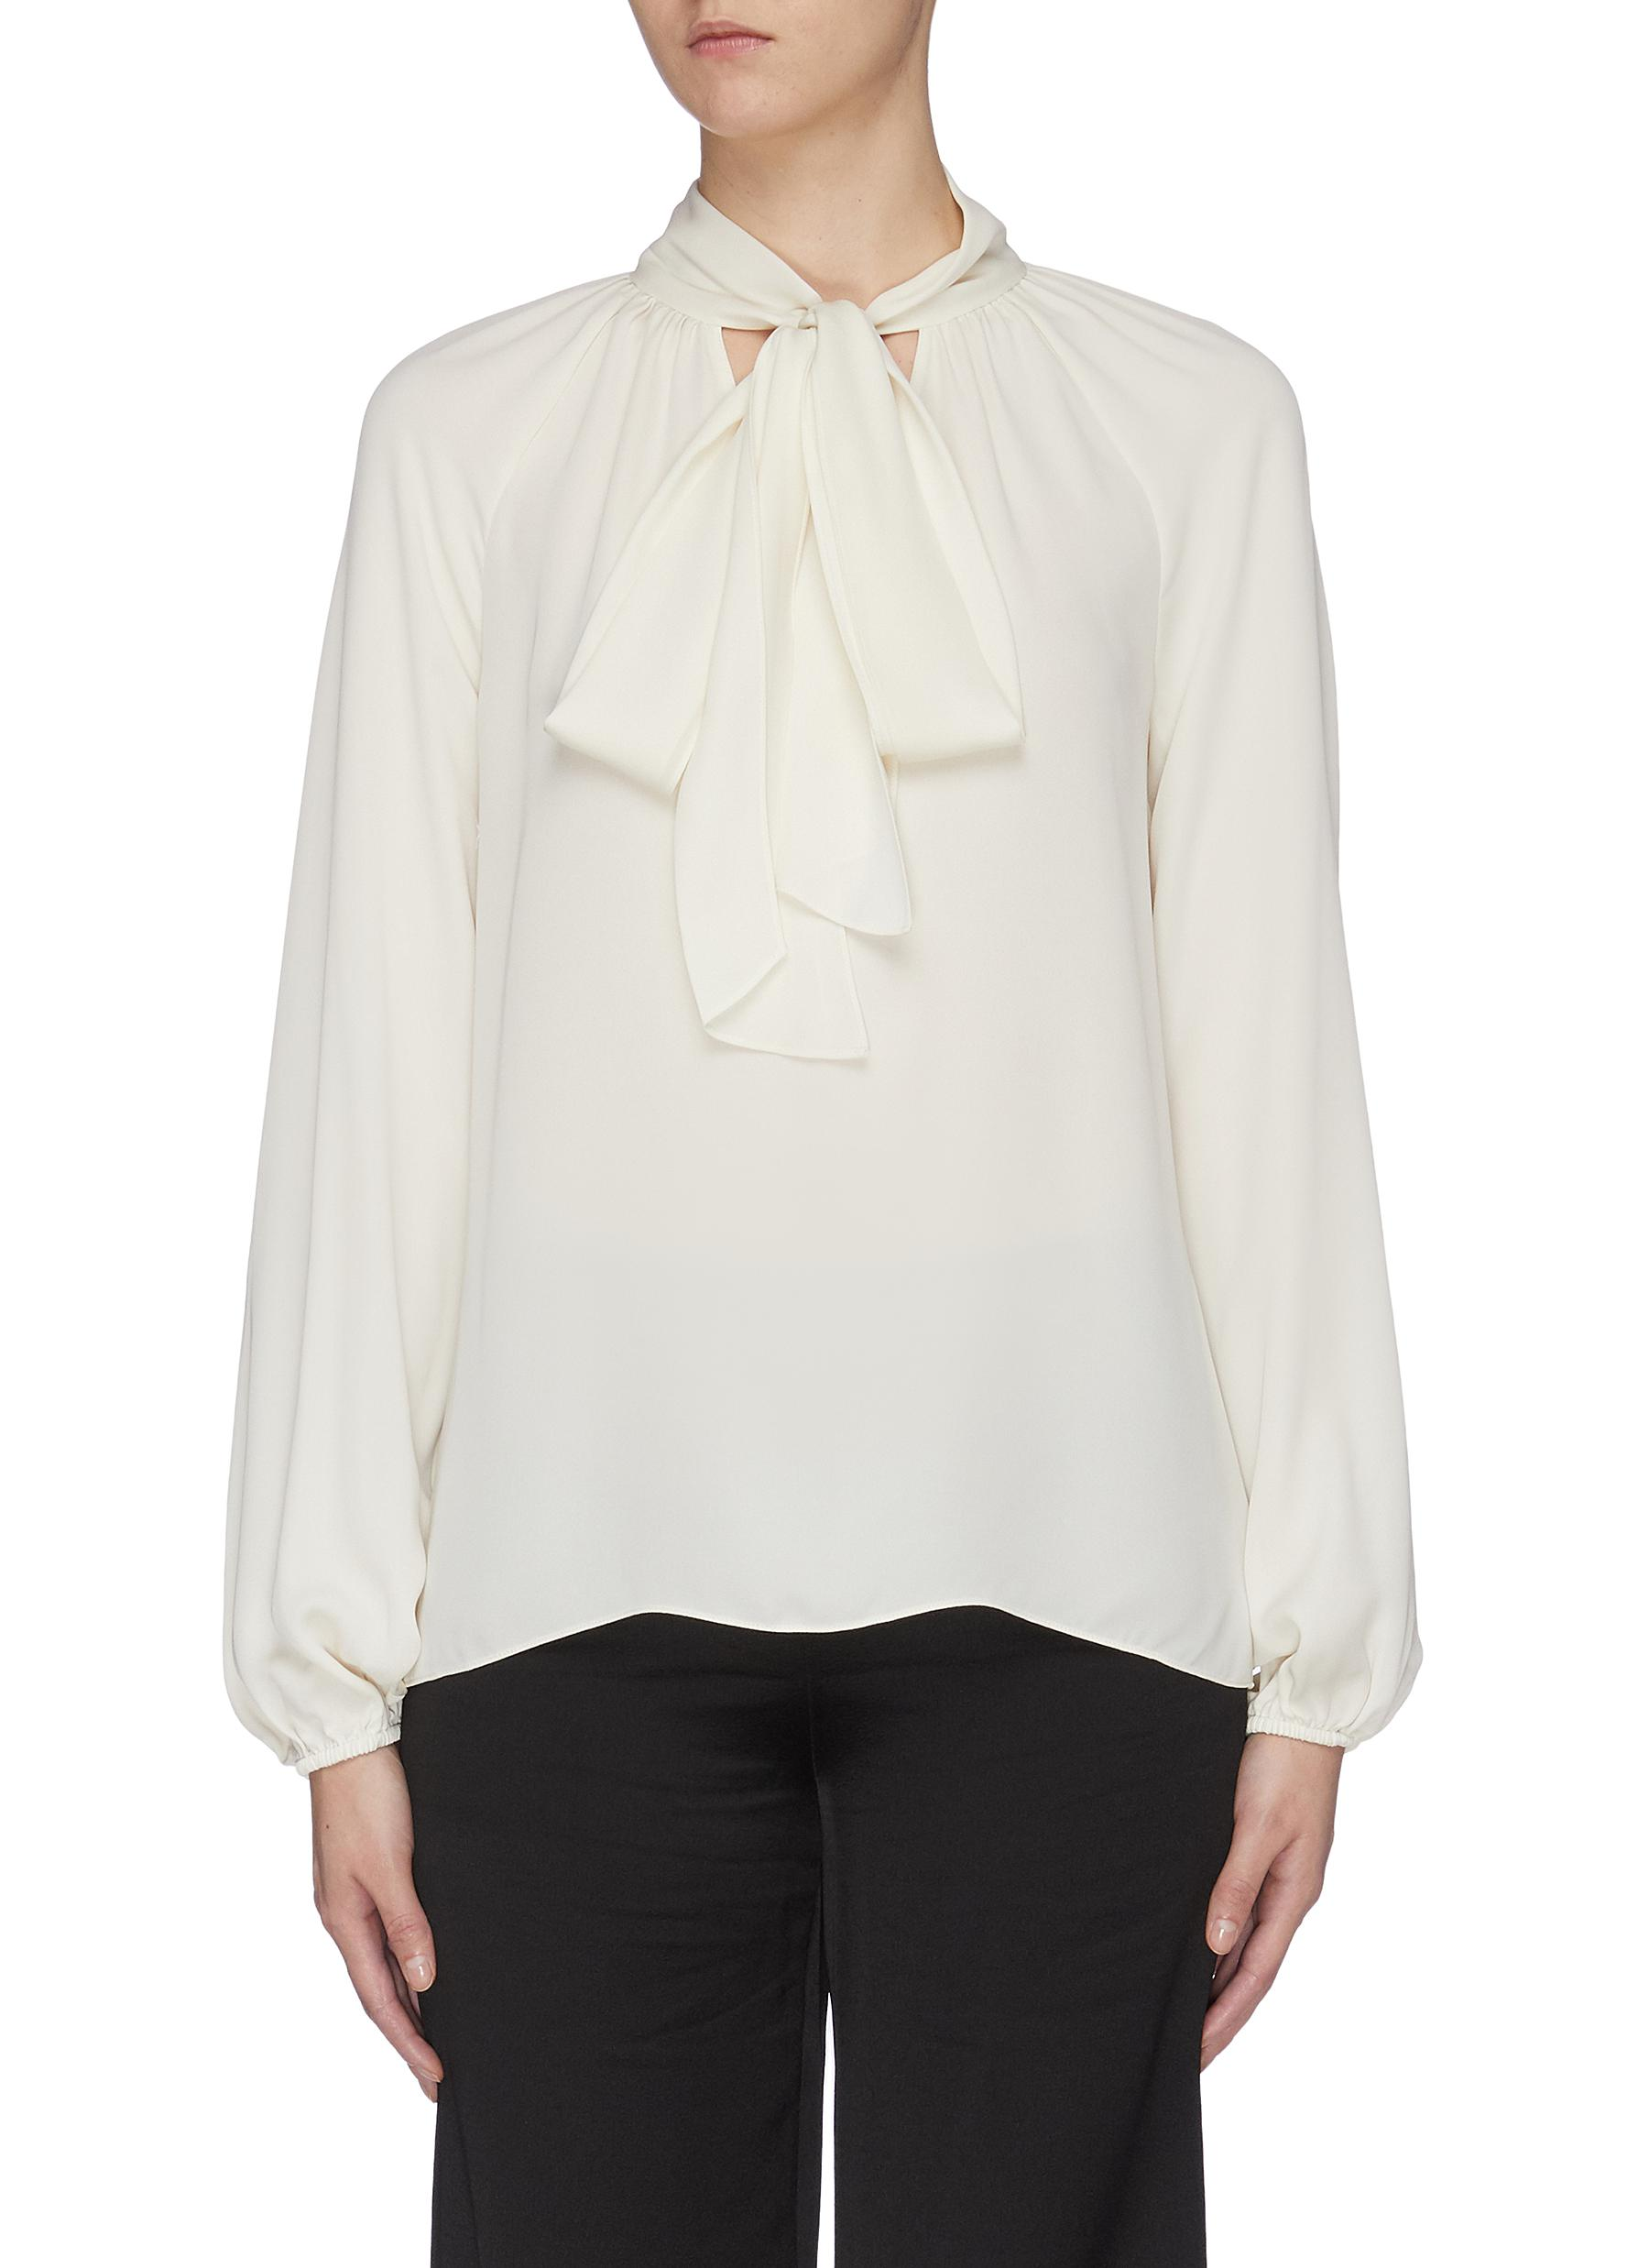 Sash tie neck top by Theory